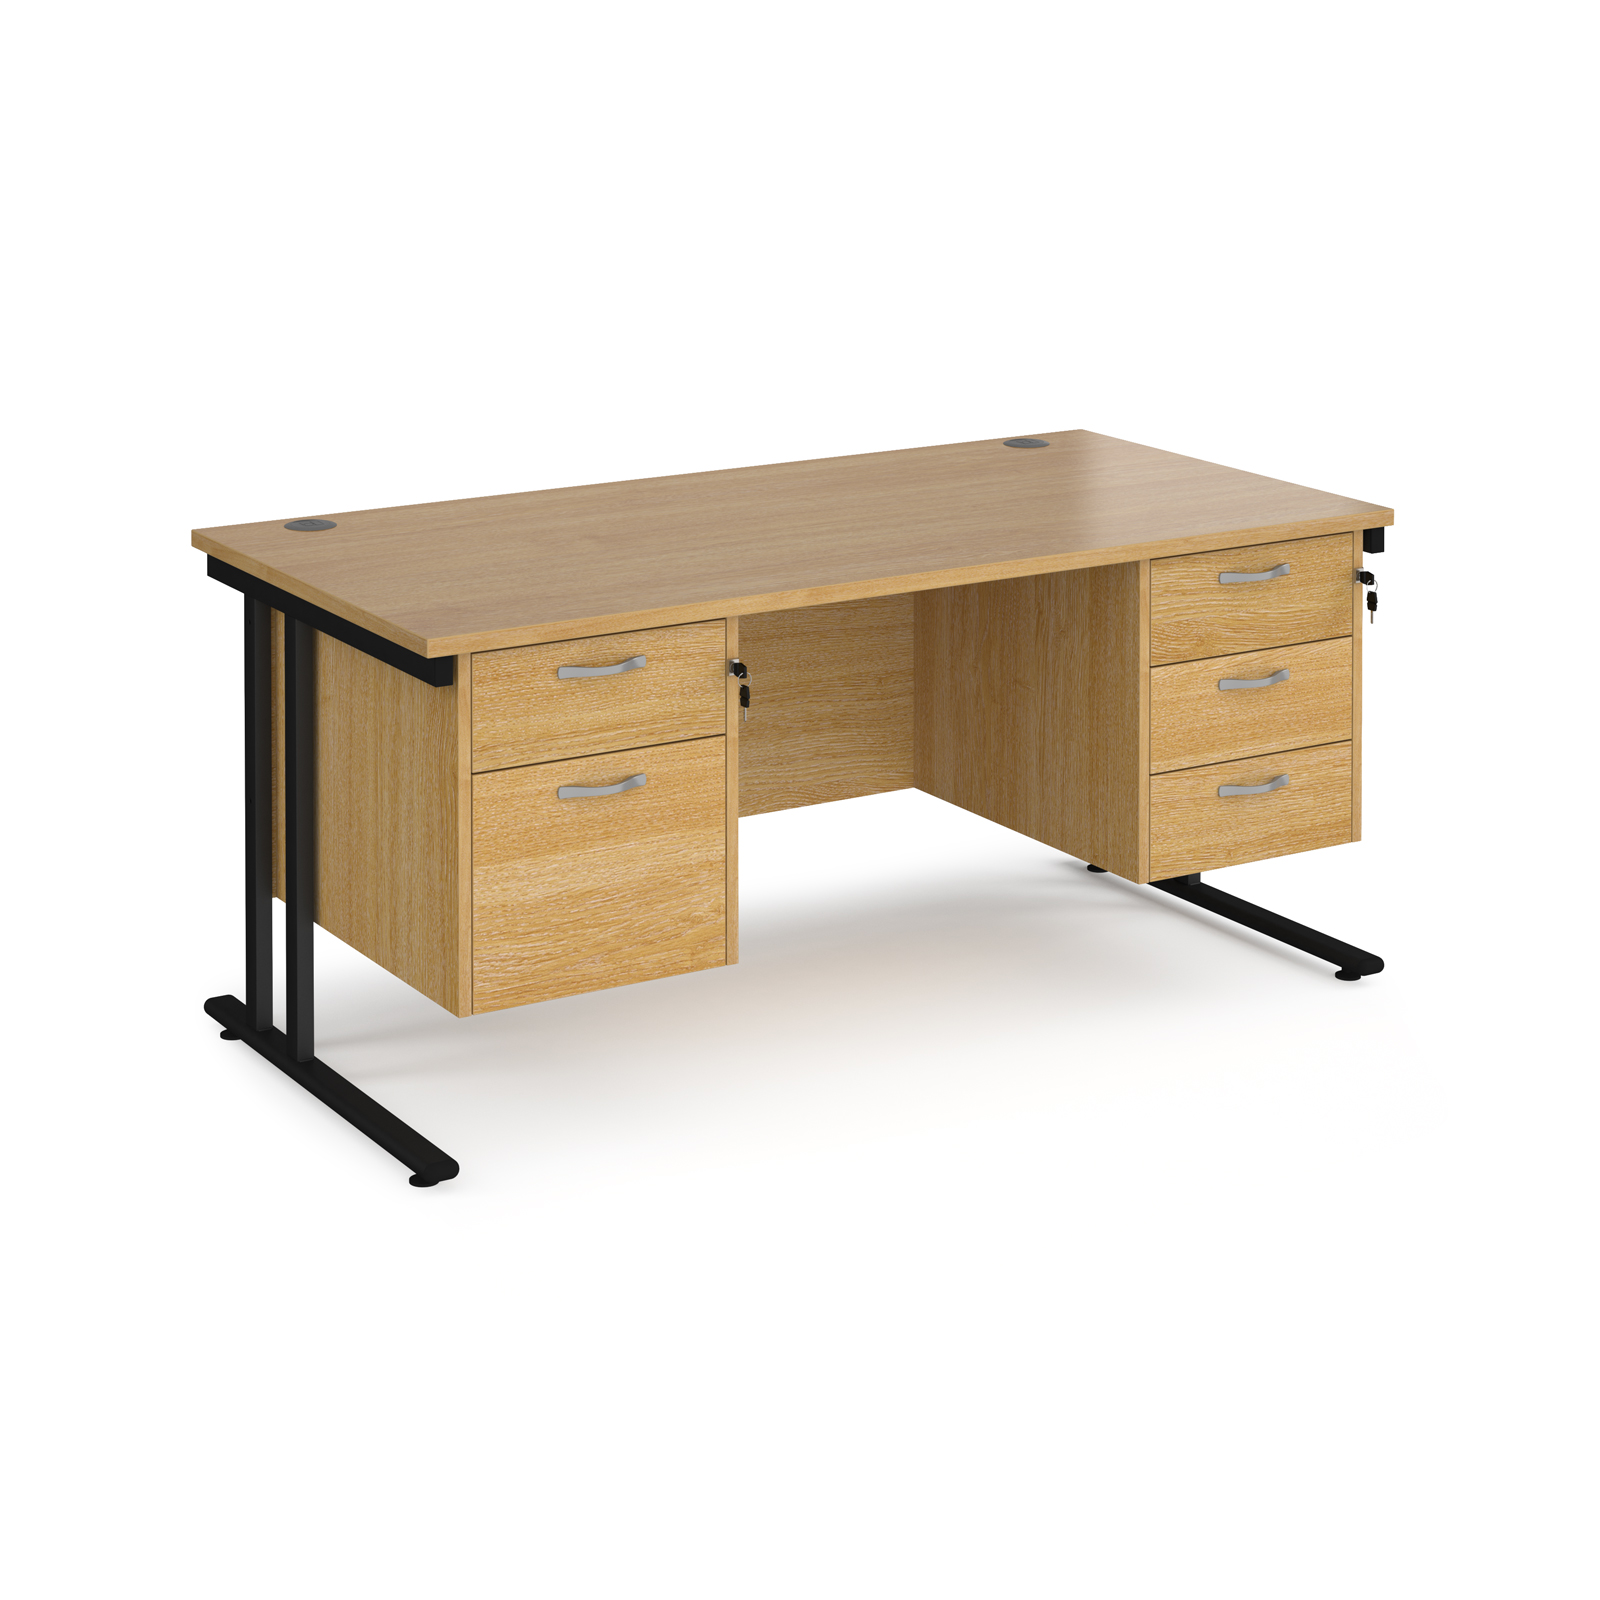 Maestro 25 straight desk 1600mm x 800mm with 2 and 3 drawer pedestals - black cantilever leg frame, oak top